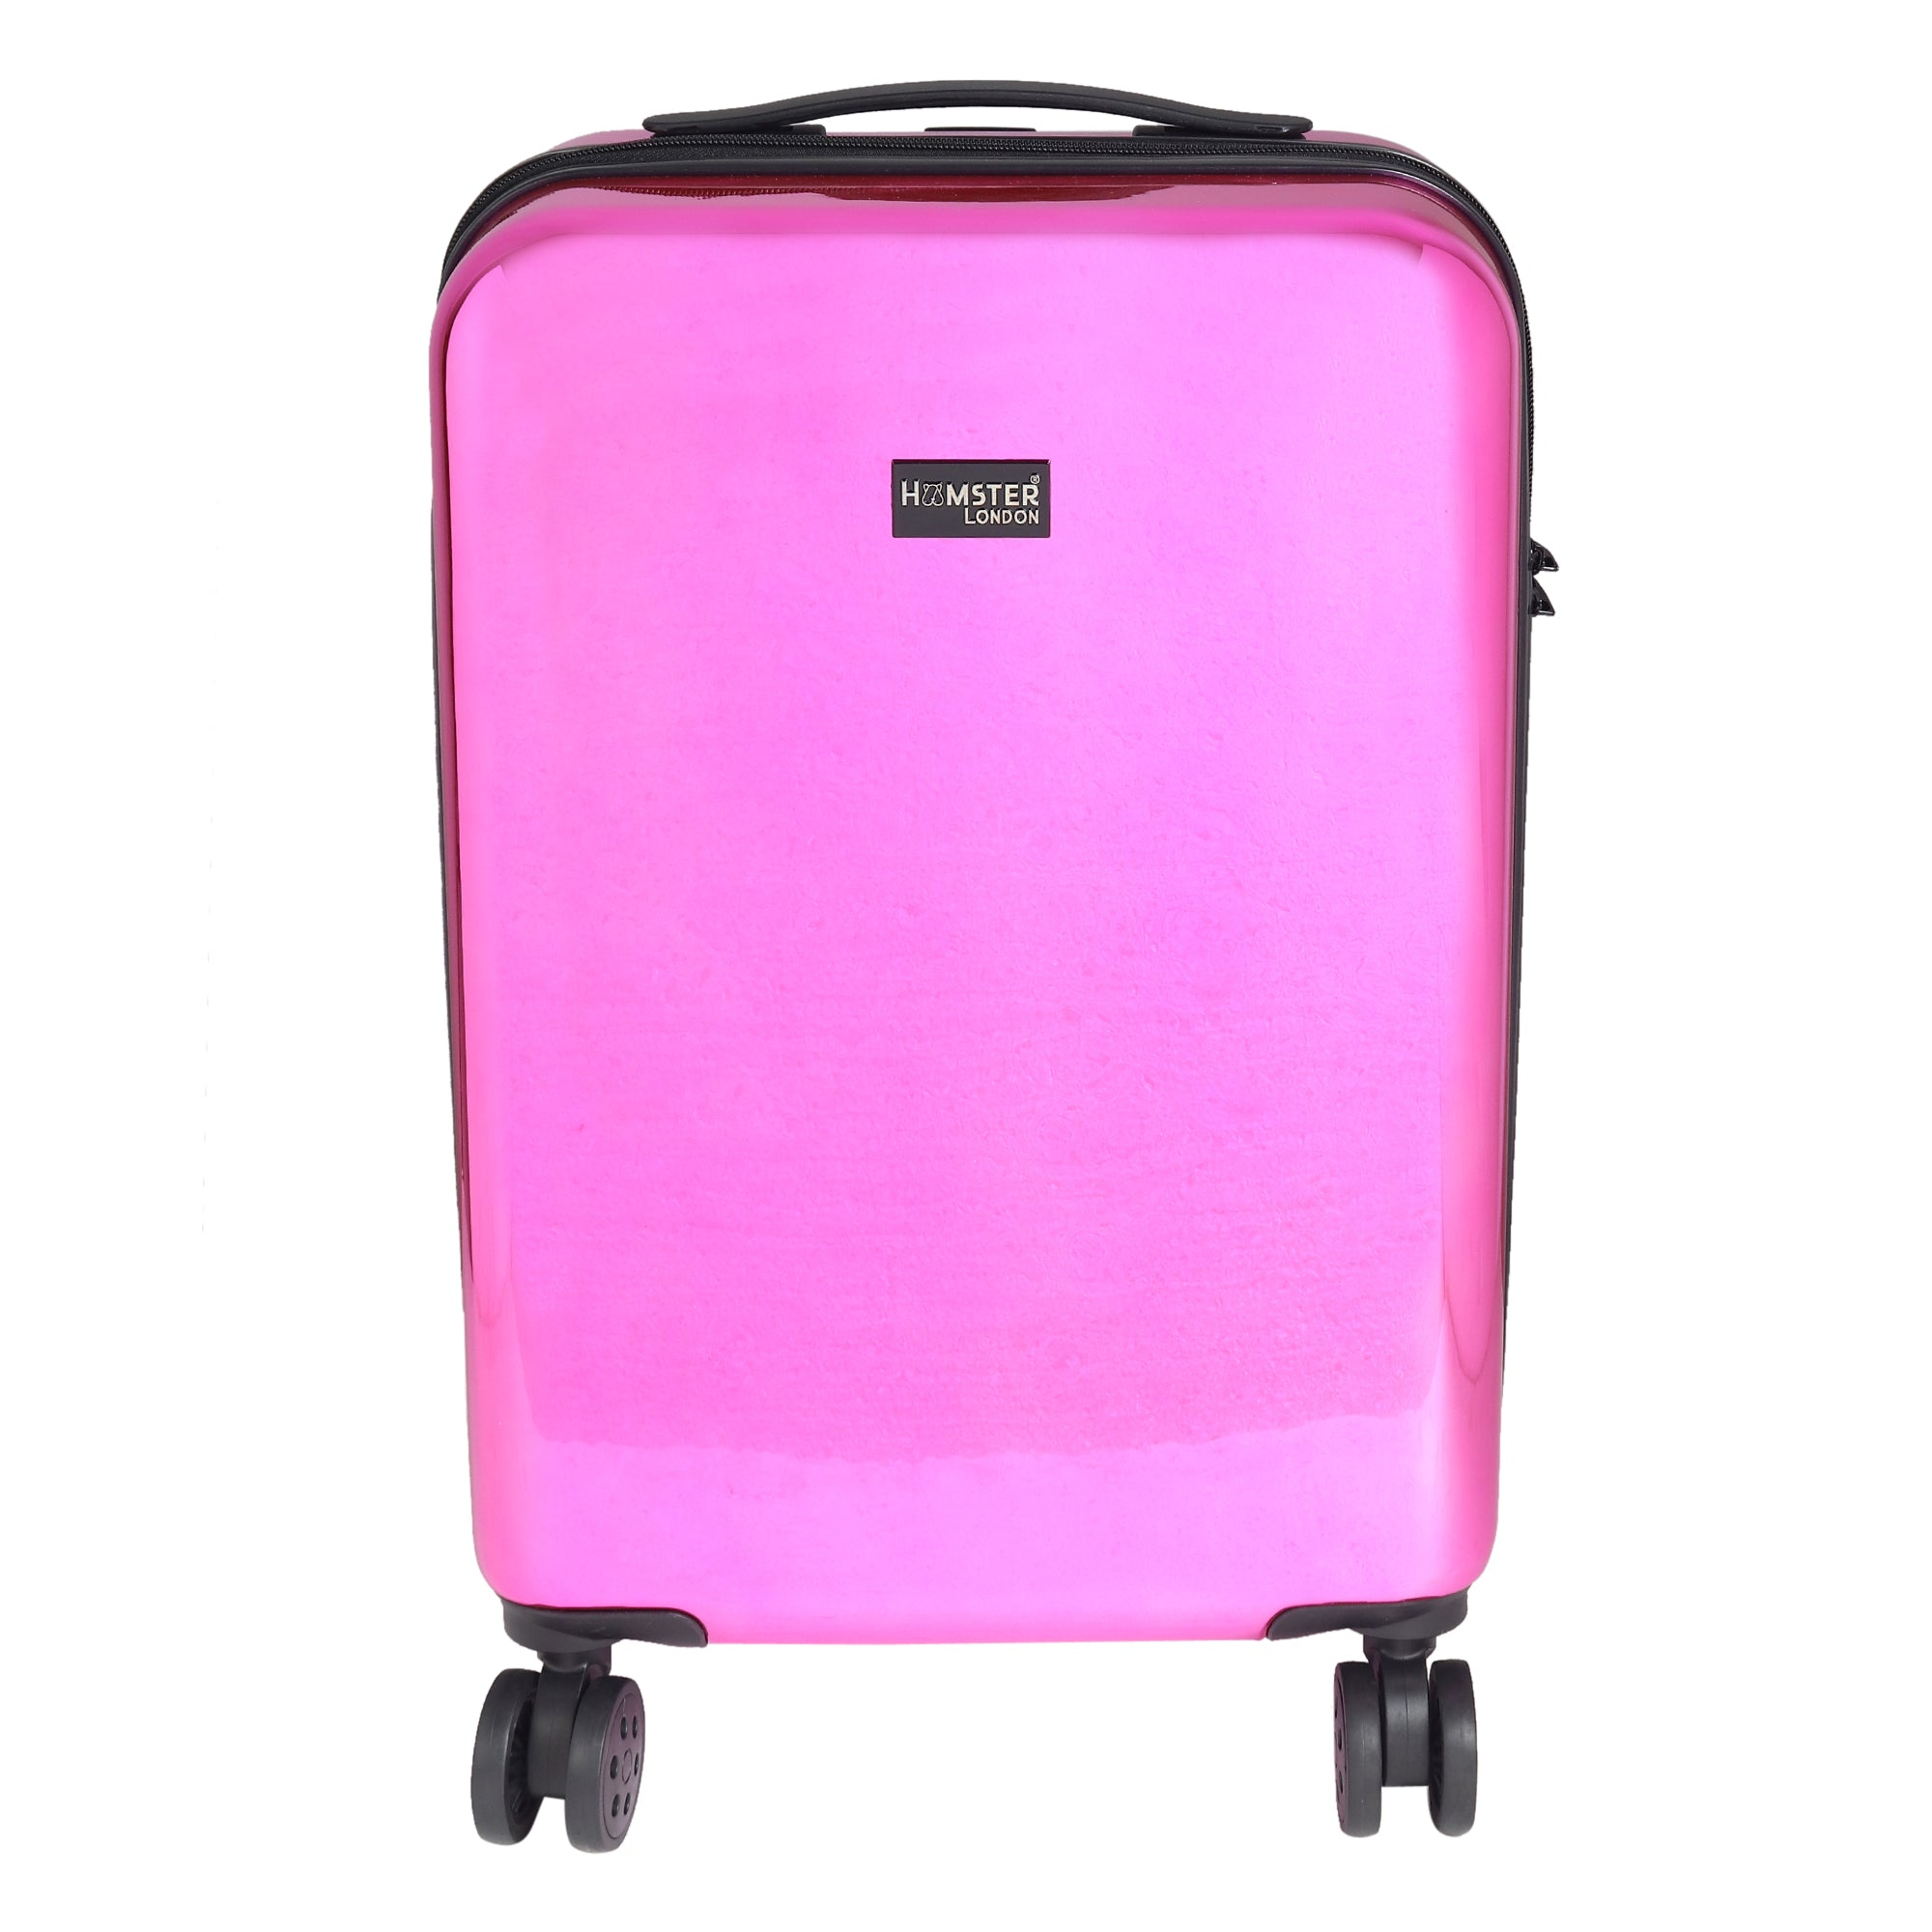 Hamster London HL Vintage Suitcase/ 55 Cms ABS+ Polycarbonate Mirror Finish Hardsided Cabin Luggage ( Pink)